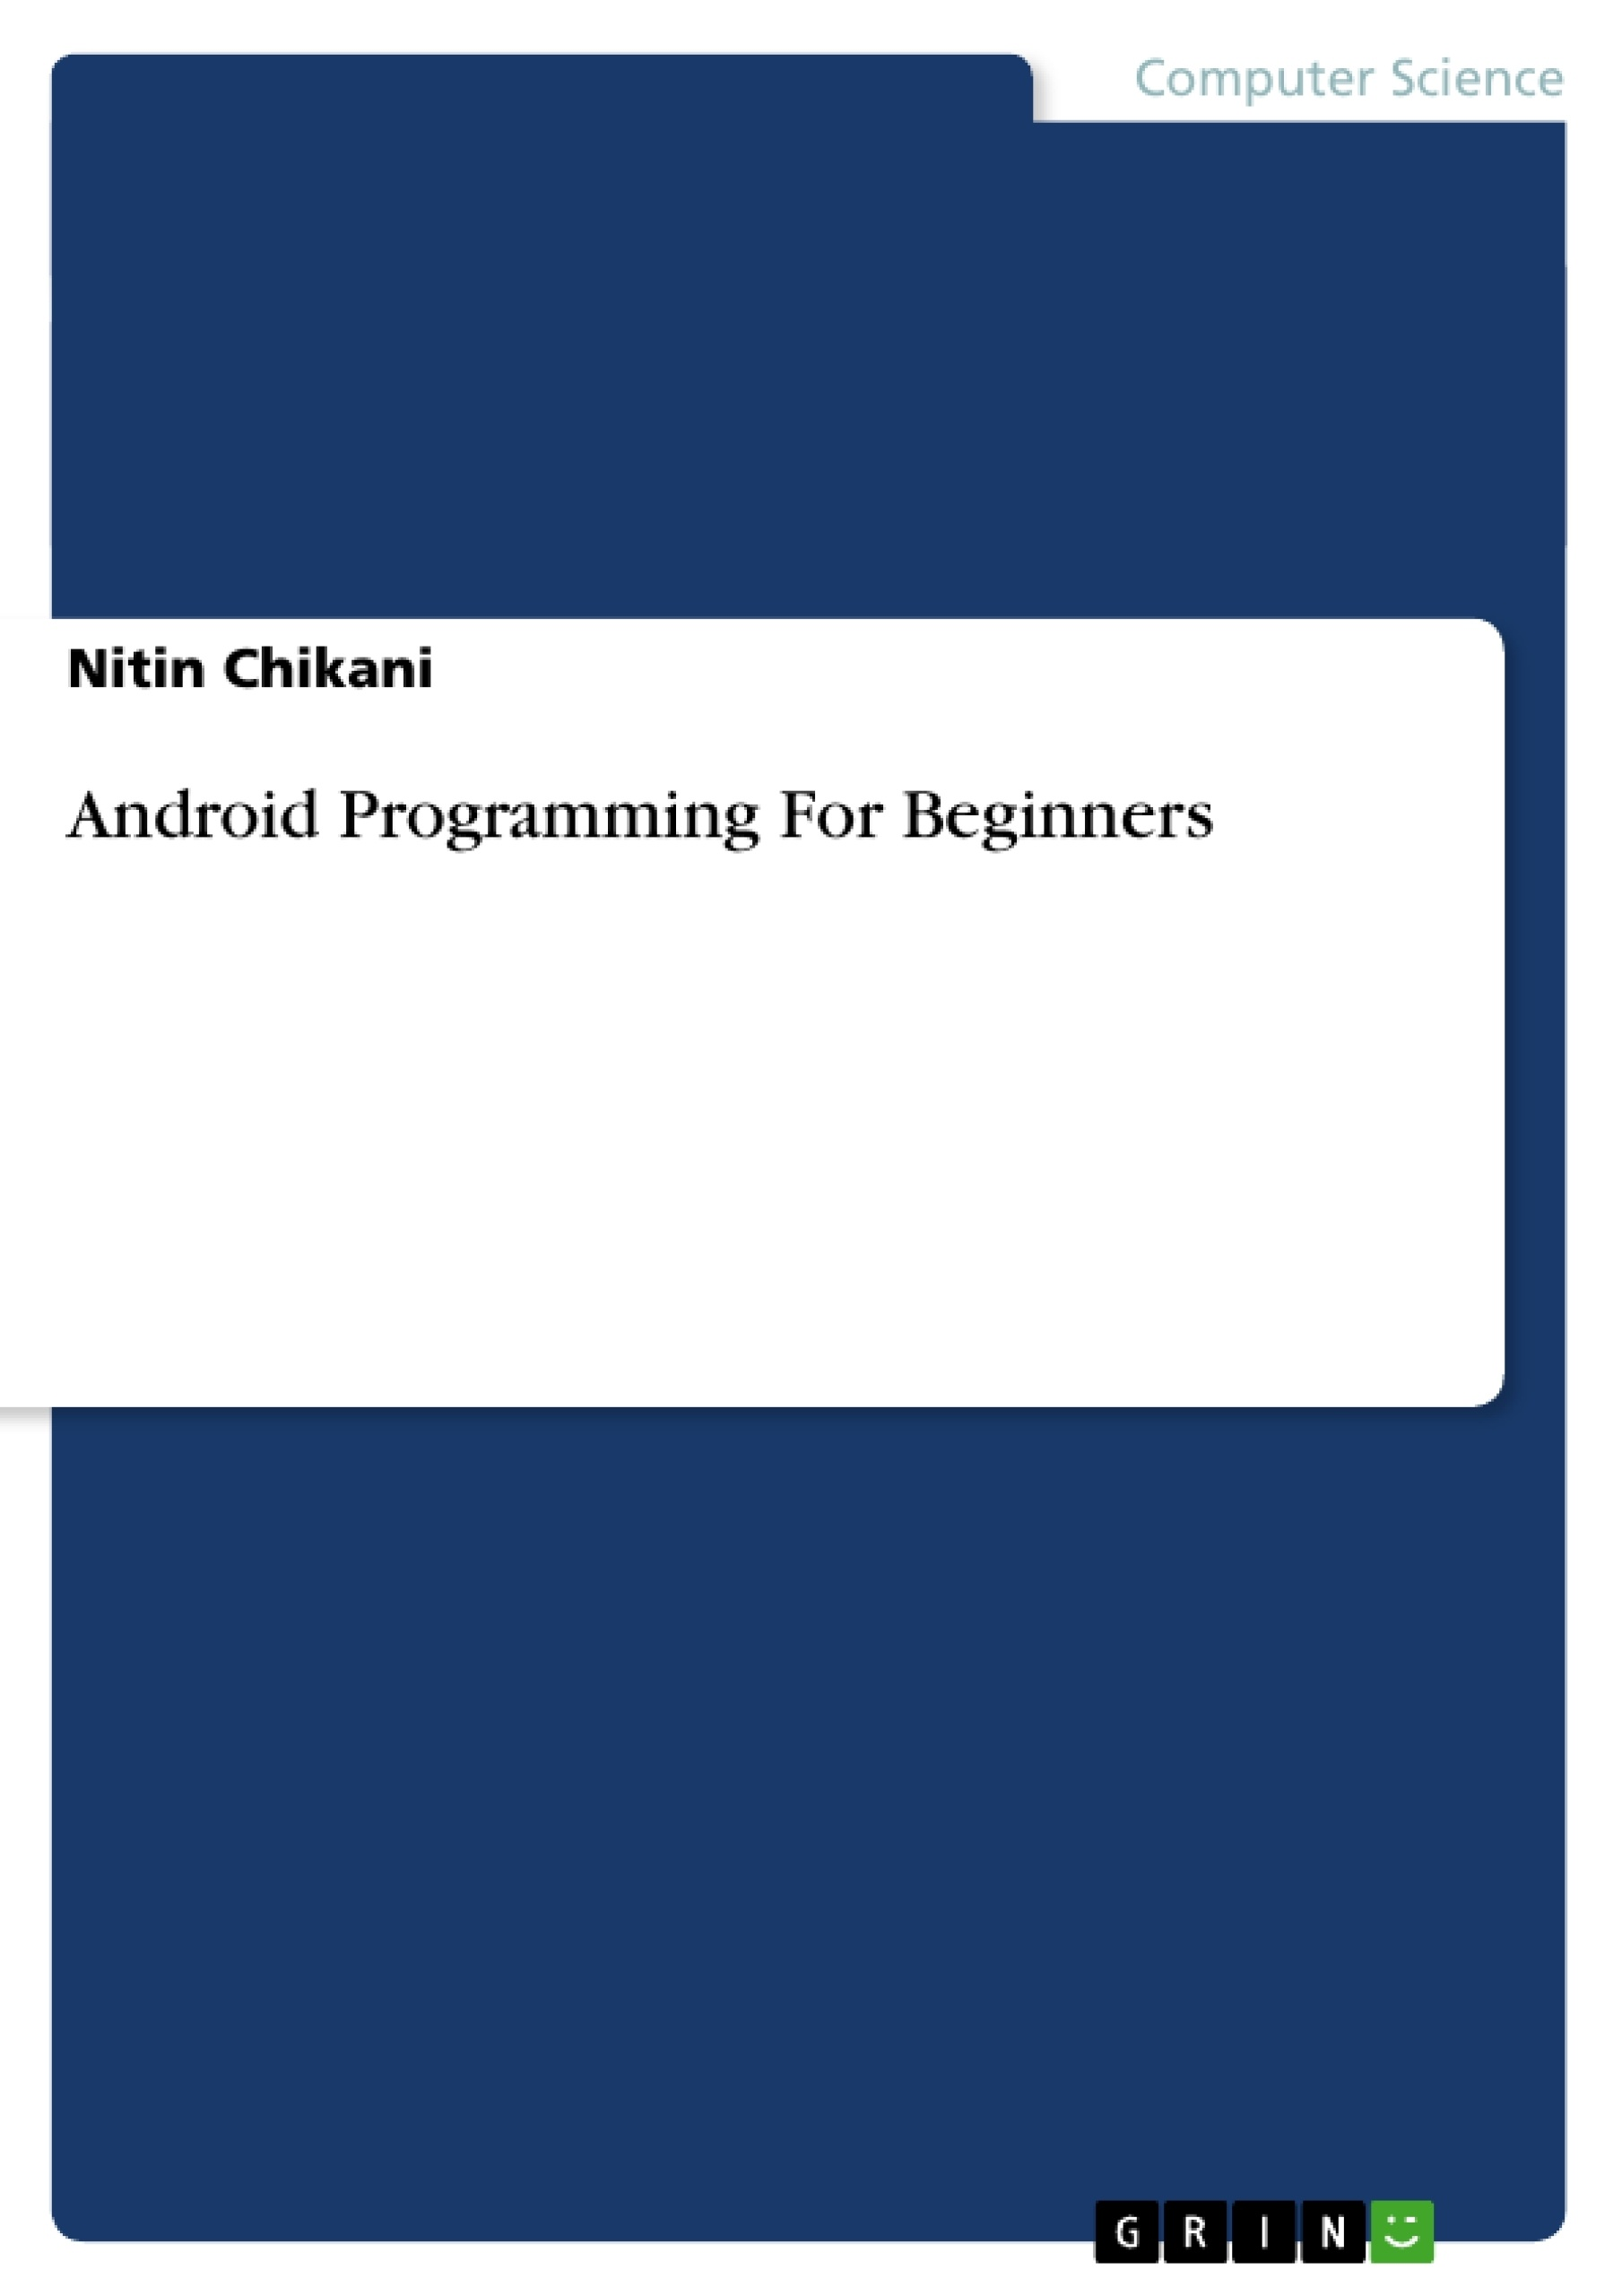 Title: Android Programming For Beginners